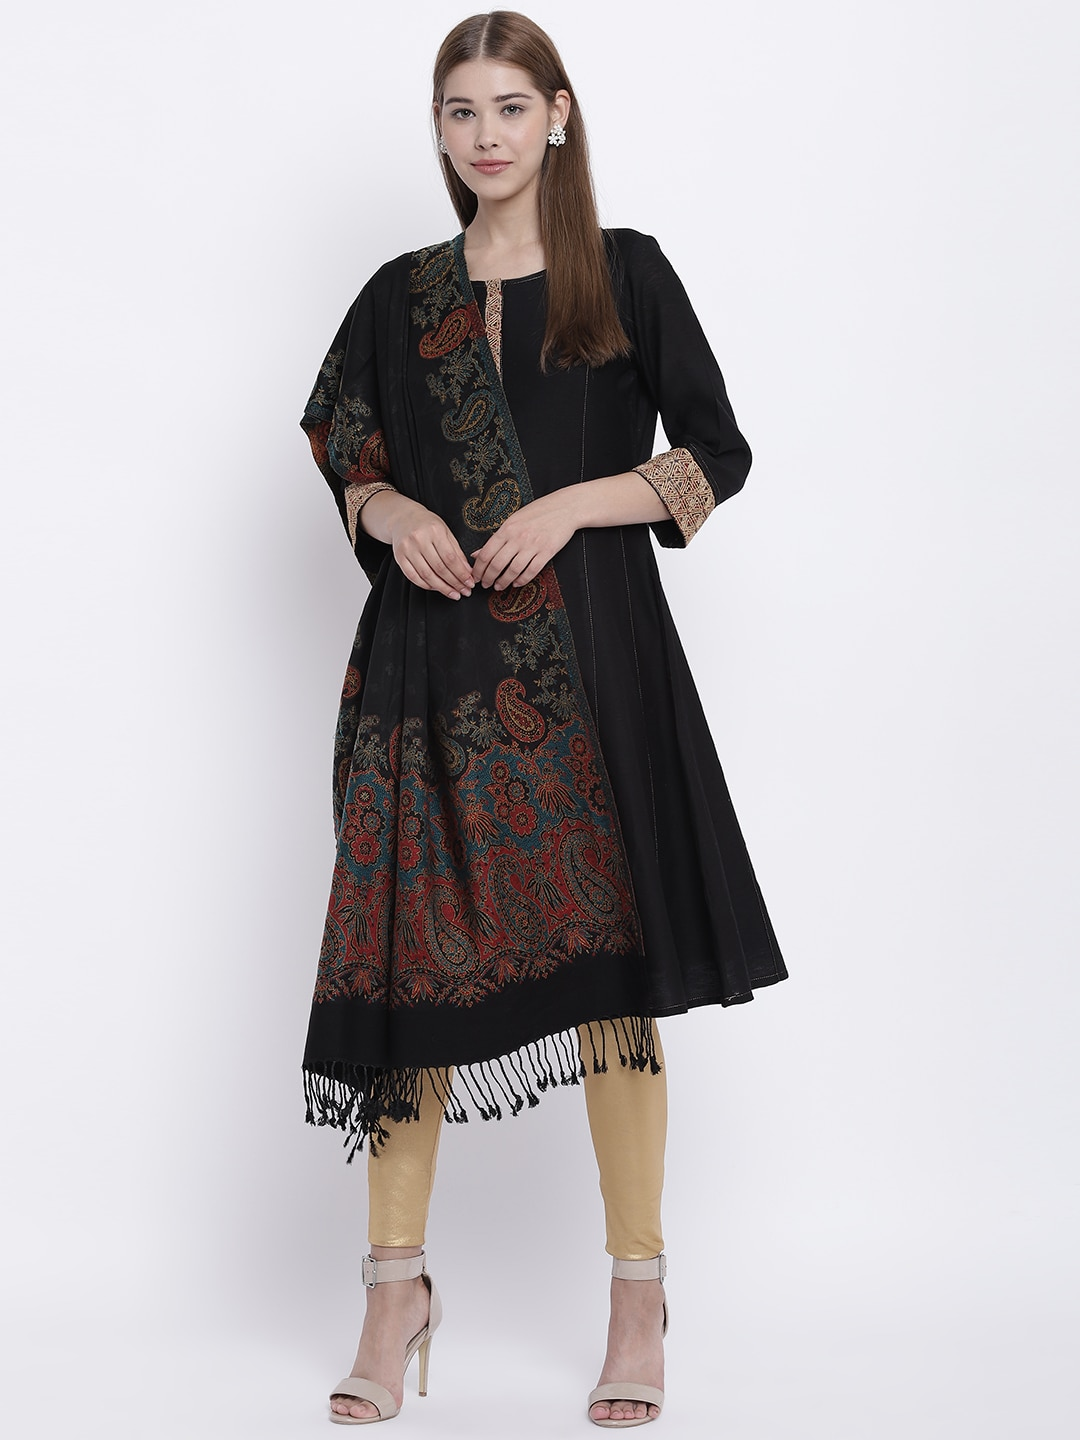 c8e92451479bd Shawls for Women - Buy Shawls Online in India at Best Price